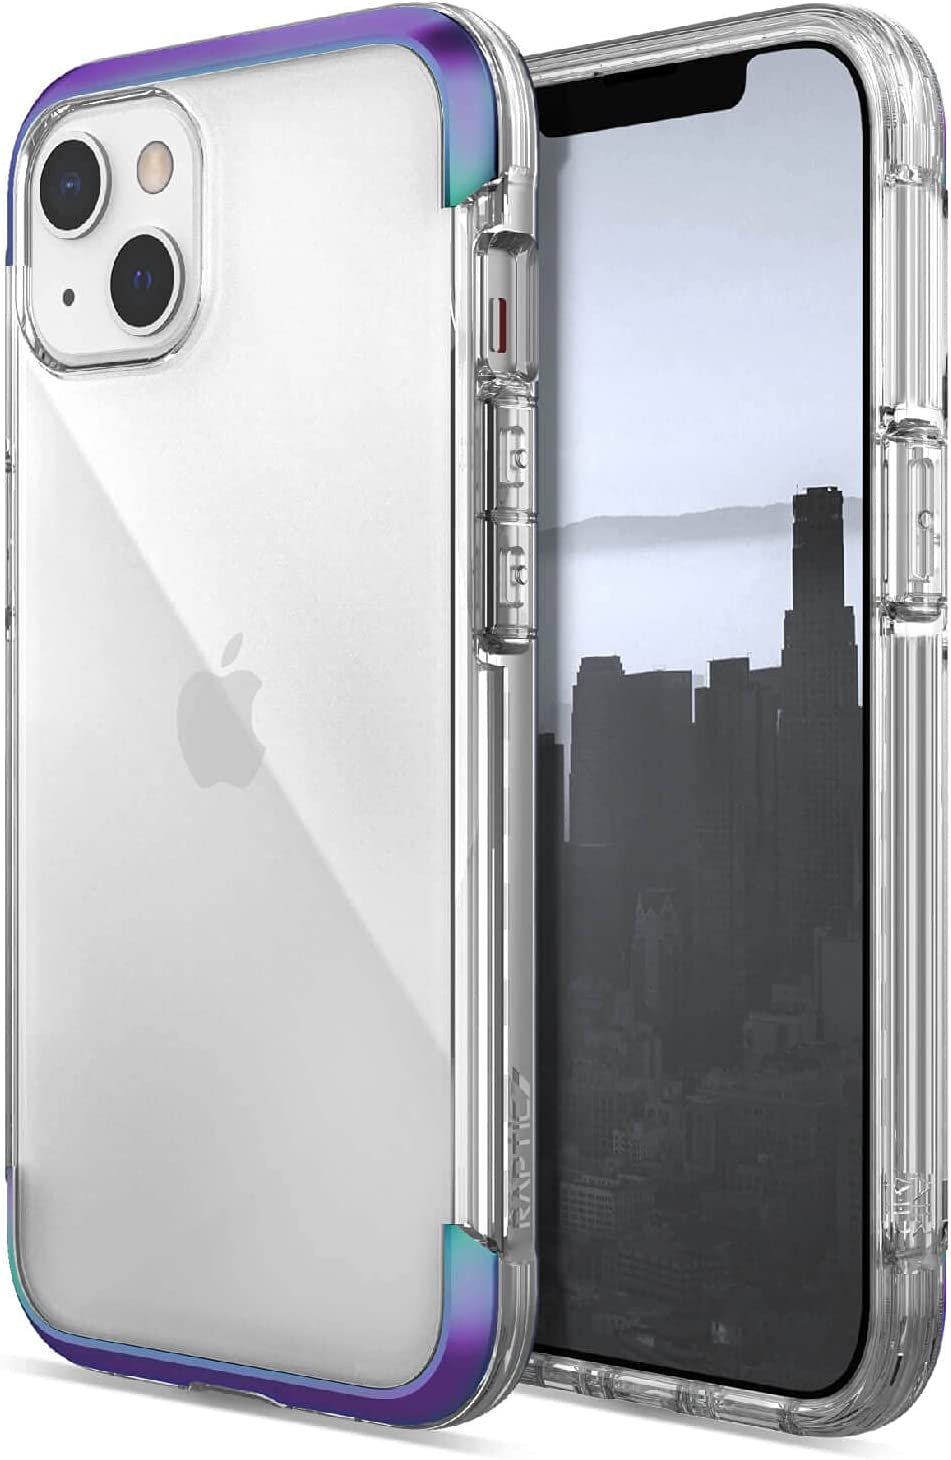 Raptic Air Case Compatible with iPhone 13 Case, Scratch Resistant, Aluminum Metal Bumper, Wireless Charging, 13ft Drop Protection, Fits iPhone 13, Iridescent